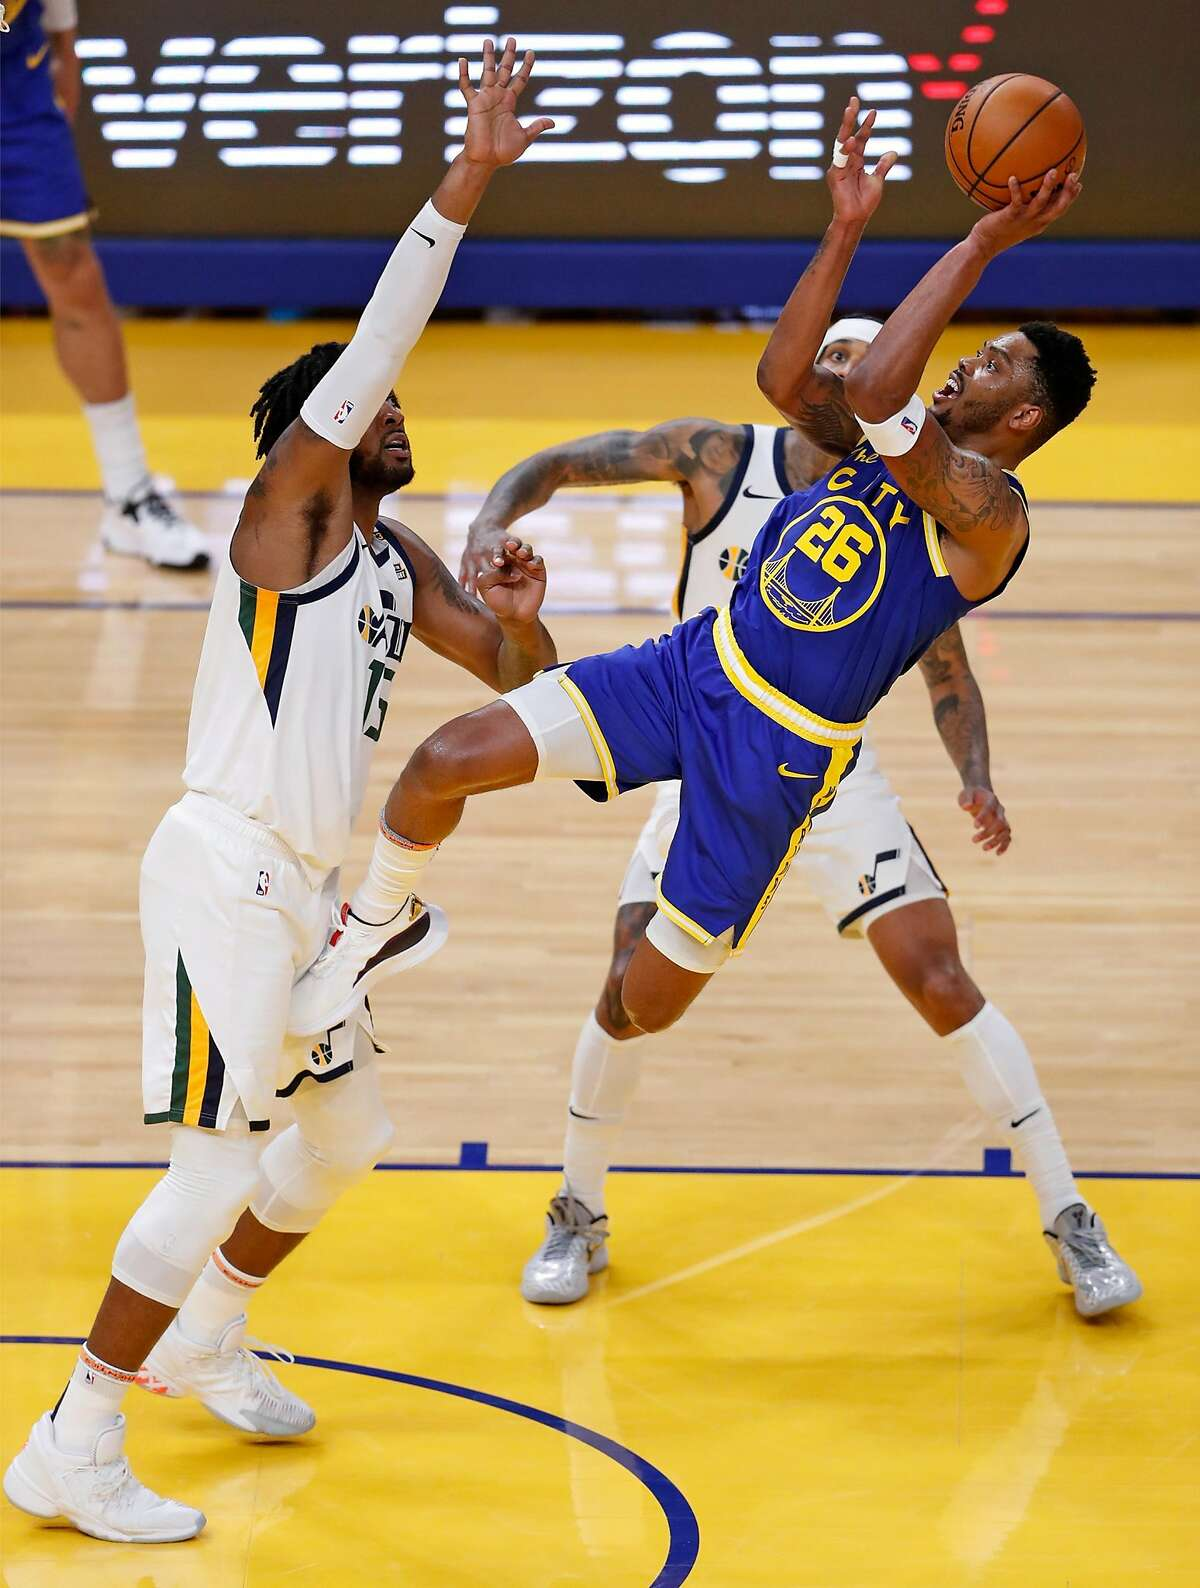 Golden State Warriors' Kent Bazemore scores while being fouled by Utah Jazz' Derrick Favors during 3rd quarter of NBA game at Chase Center in San Francisco, Calif., on Monday, May 10, 2021.